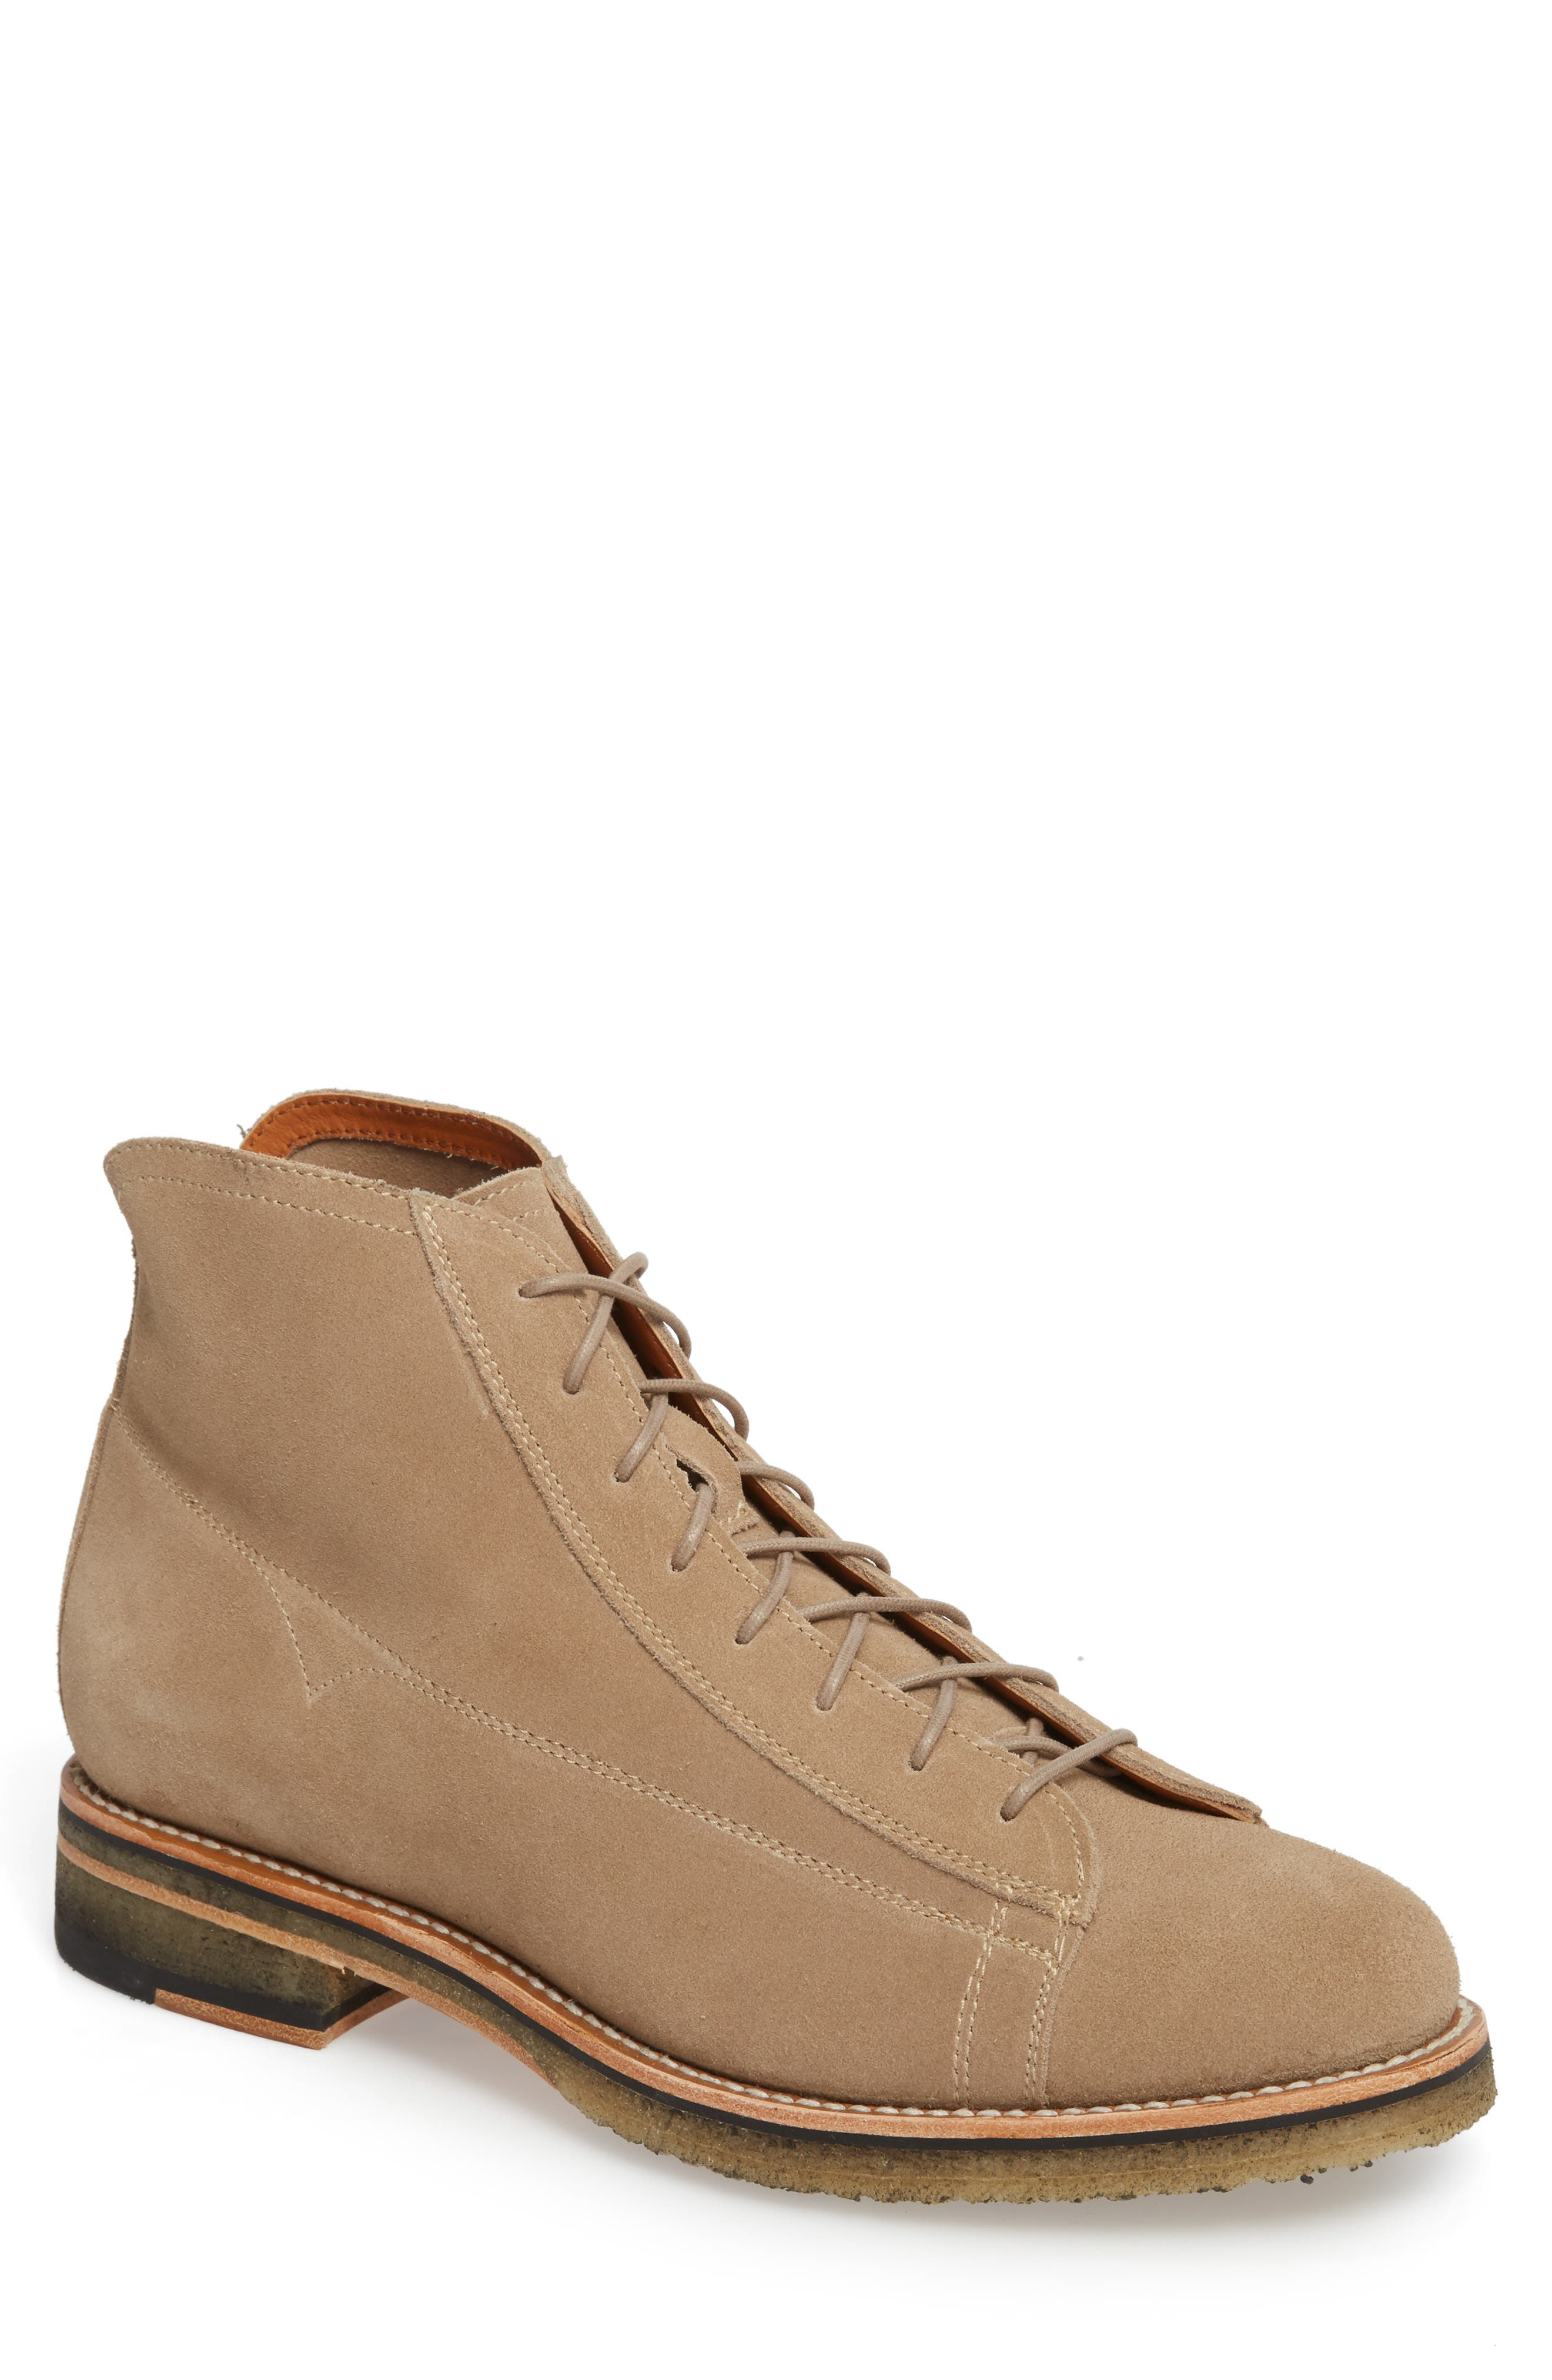 Two24 by Ariat Webster Boot,                         Main,                         color, Biscotti Suede